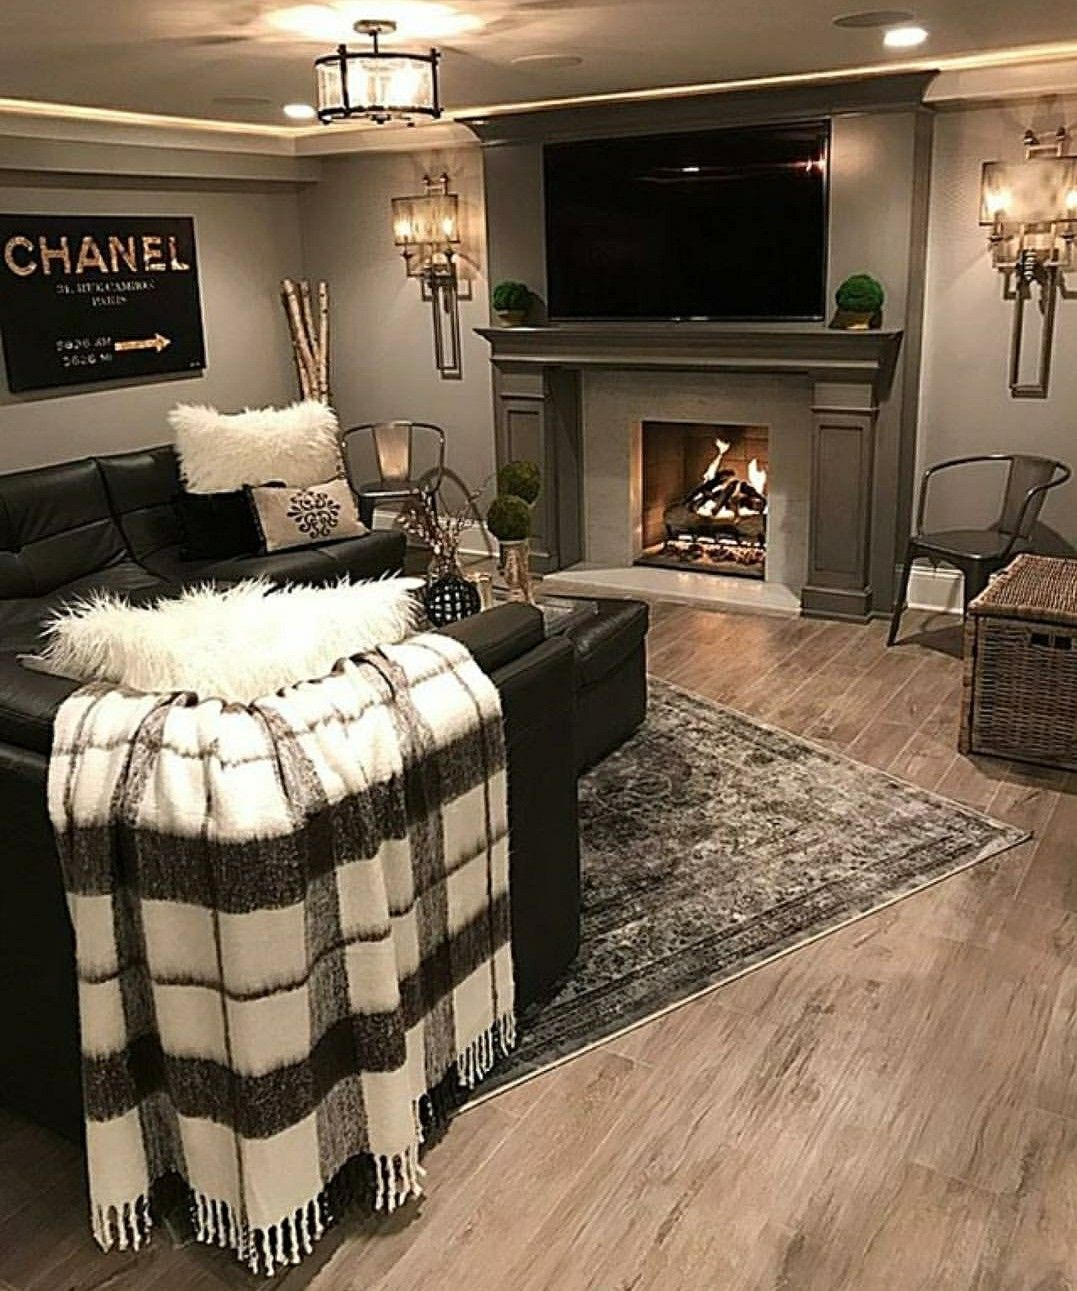 Unfinished Basement Finished Basement Ideas Basement Decor Basement Tags Unfinished Basement Ideas Unfinished Basement D Home Home Living Room New Homes